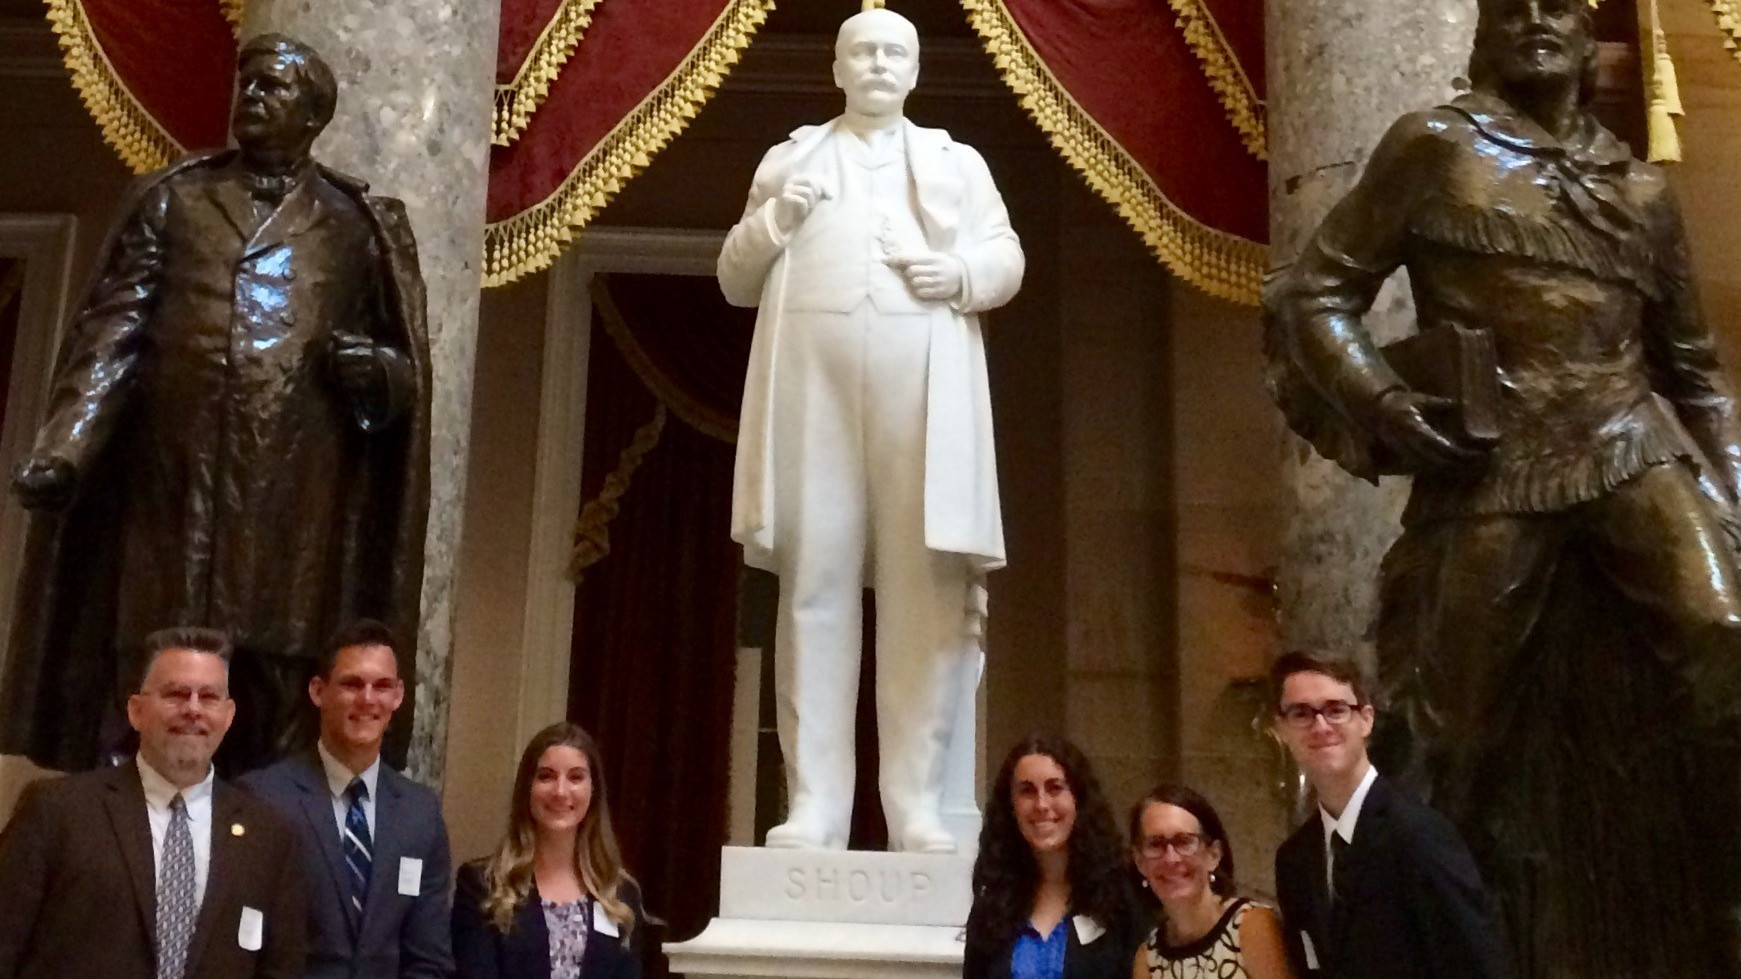 McClure Center and Martin Institute visit Sen. Risch, in Washington D.C. 2019